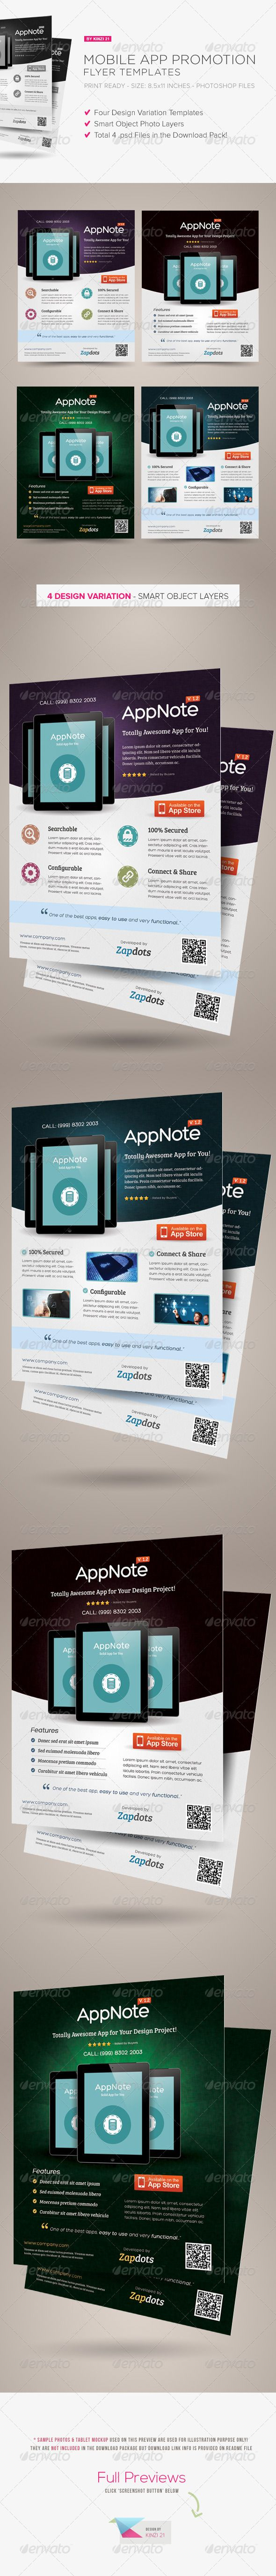 mobile app promotion flyers graphicriver the best seller mobile app